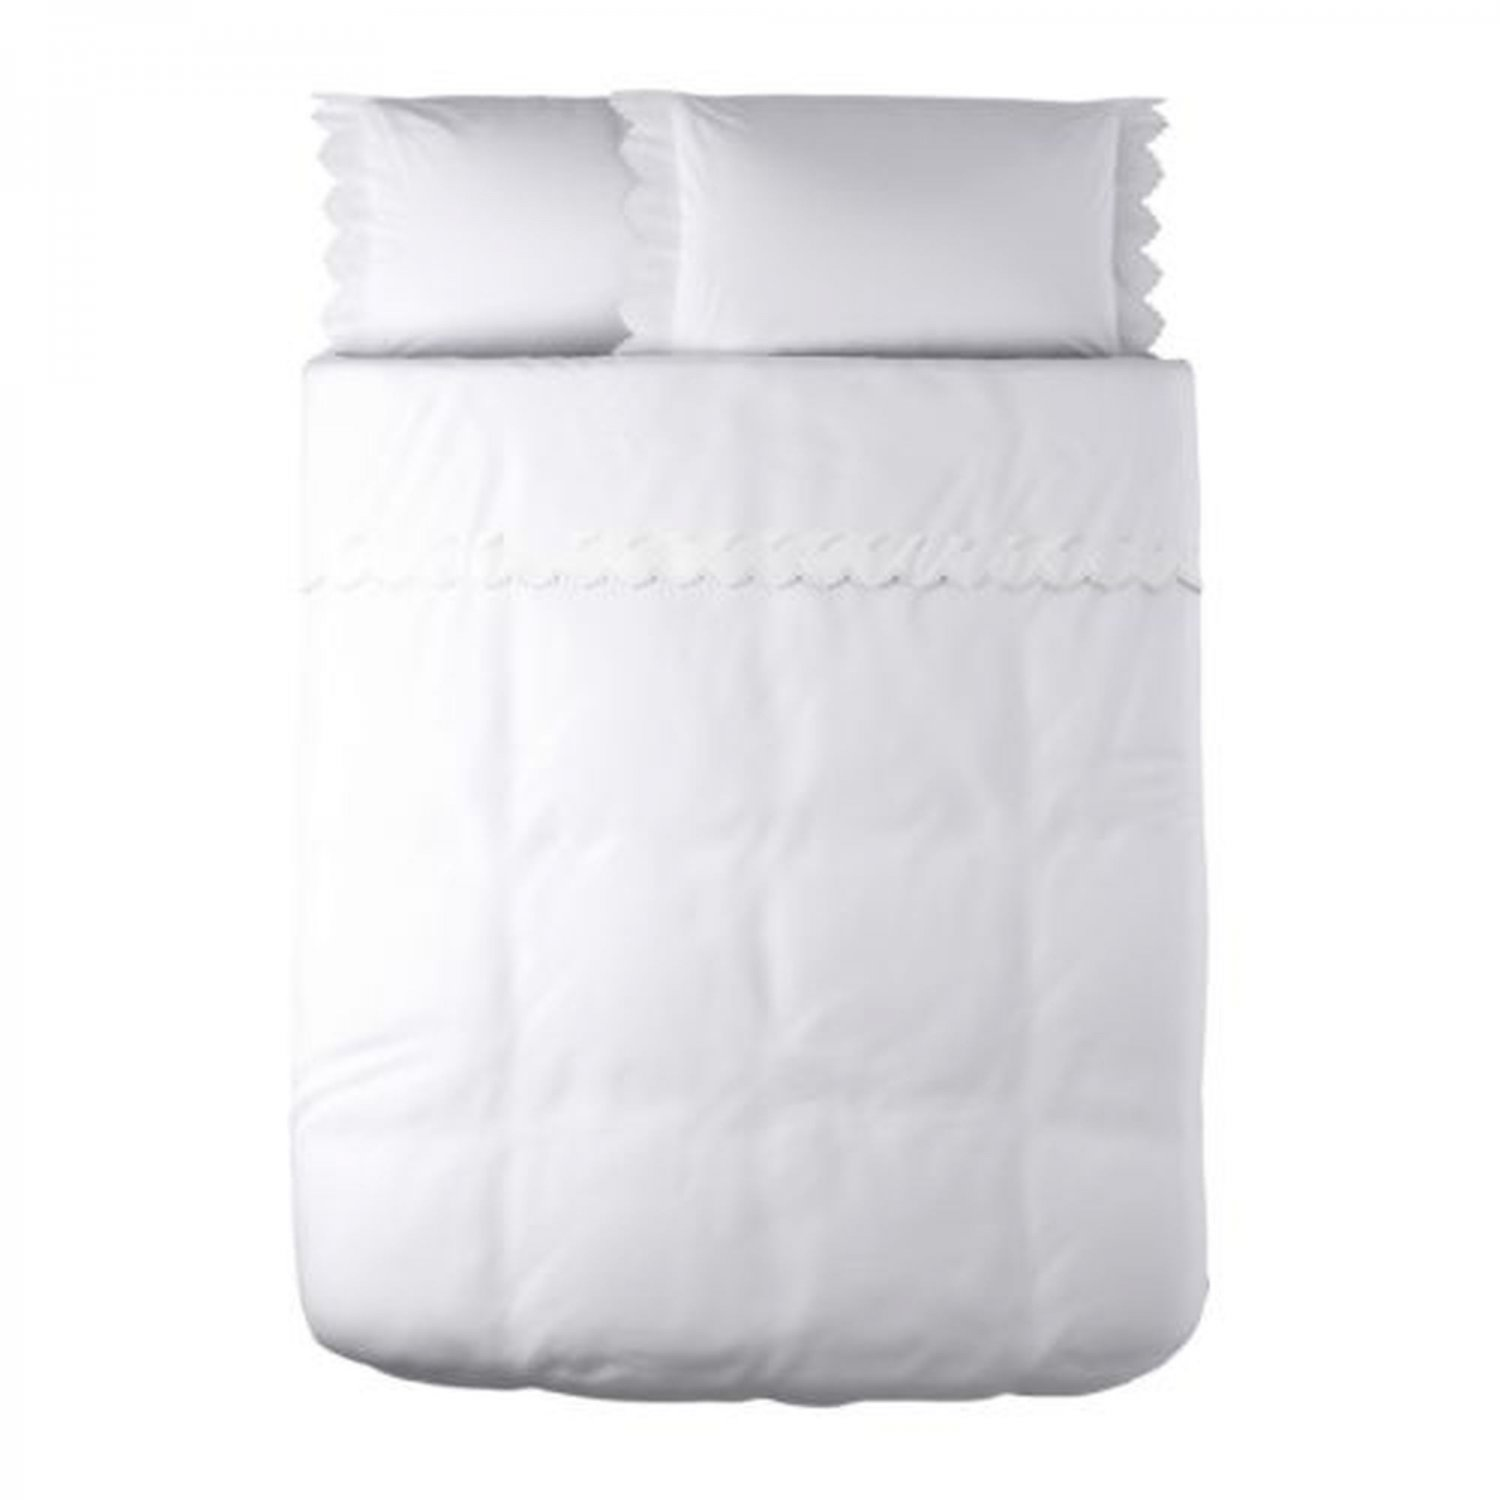 ikea alvine brodyr white embroidered duvet cover queen scalloped edge victorian. Black Bedroom Furniture Sets. Home Design Ideas